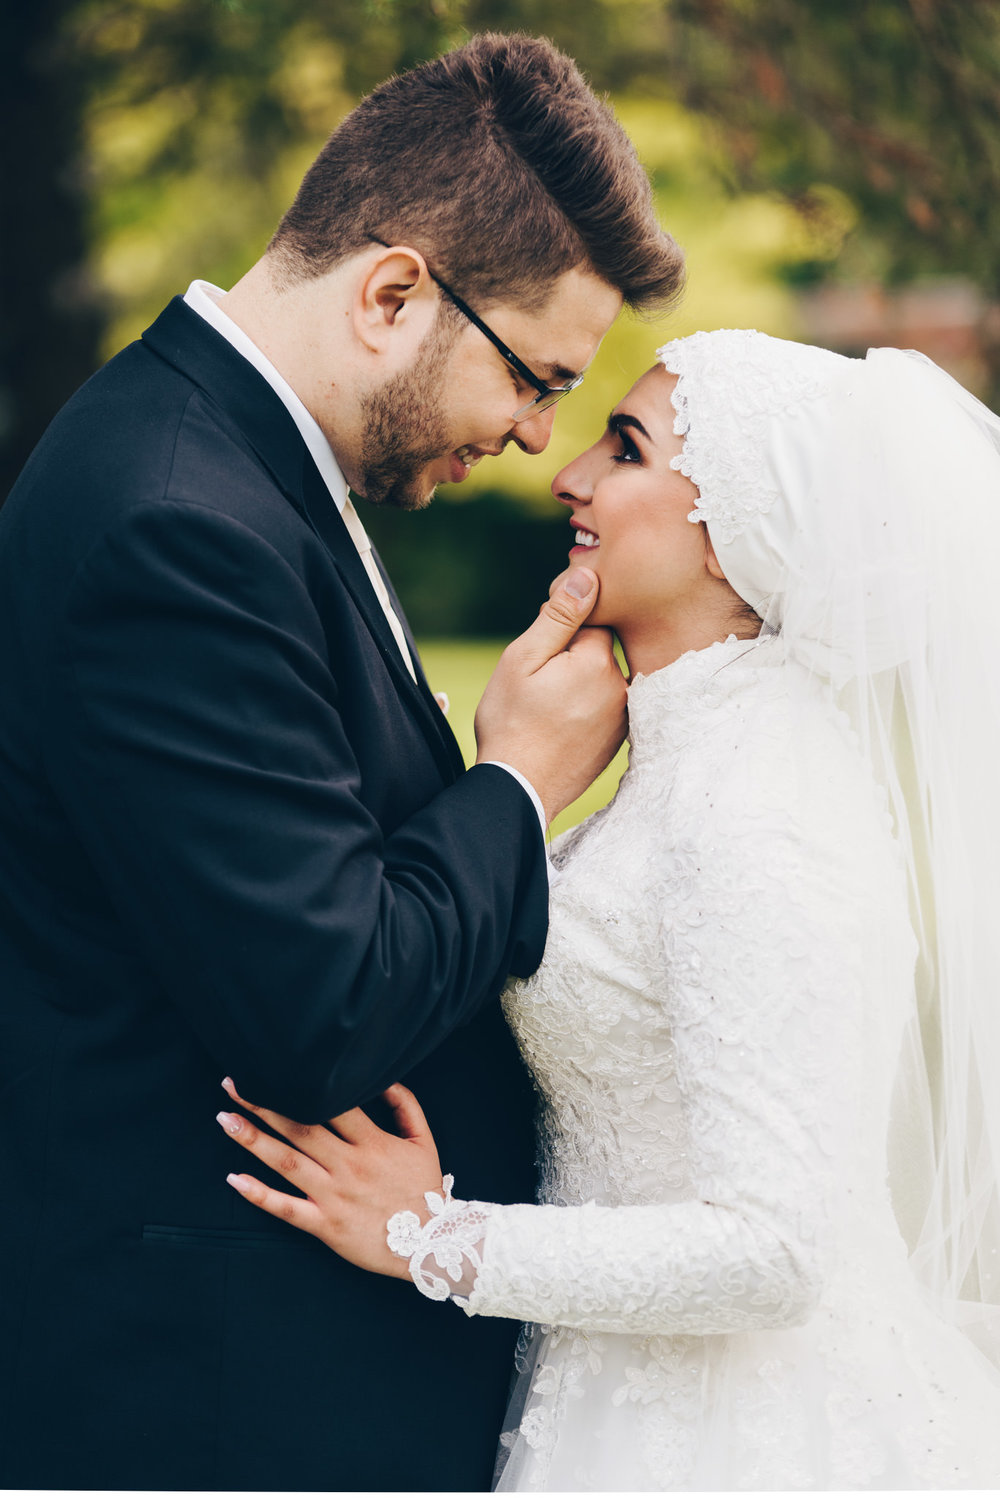 Rawan+Walid (258 of 476).jpg